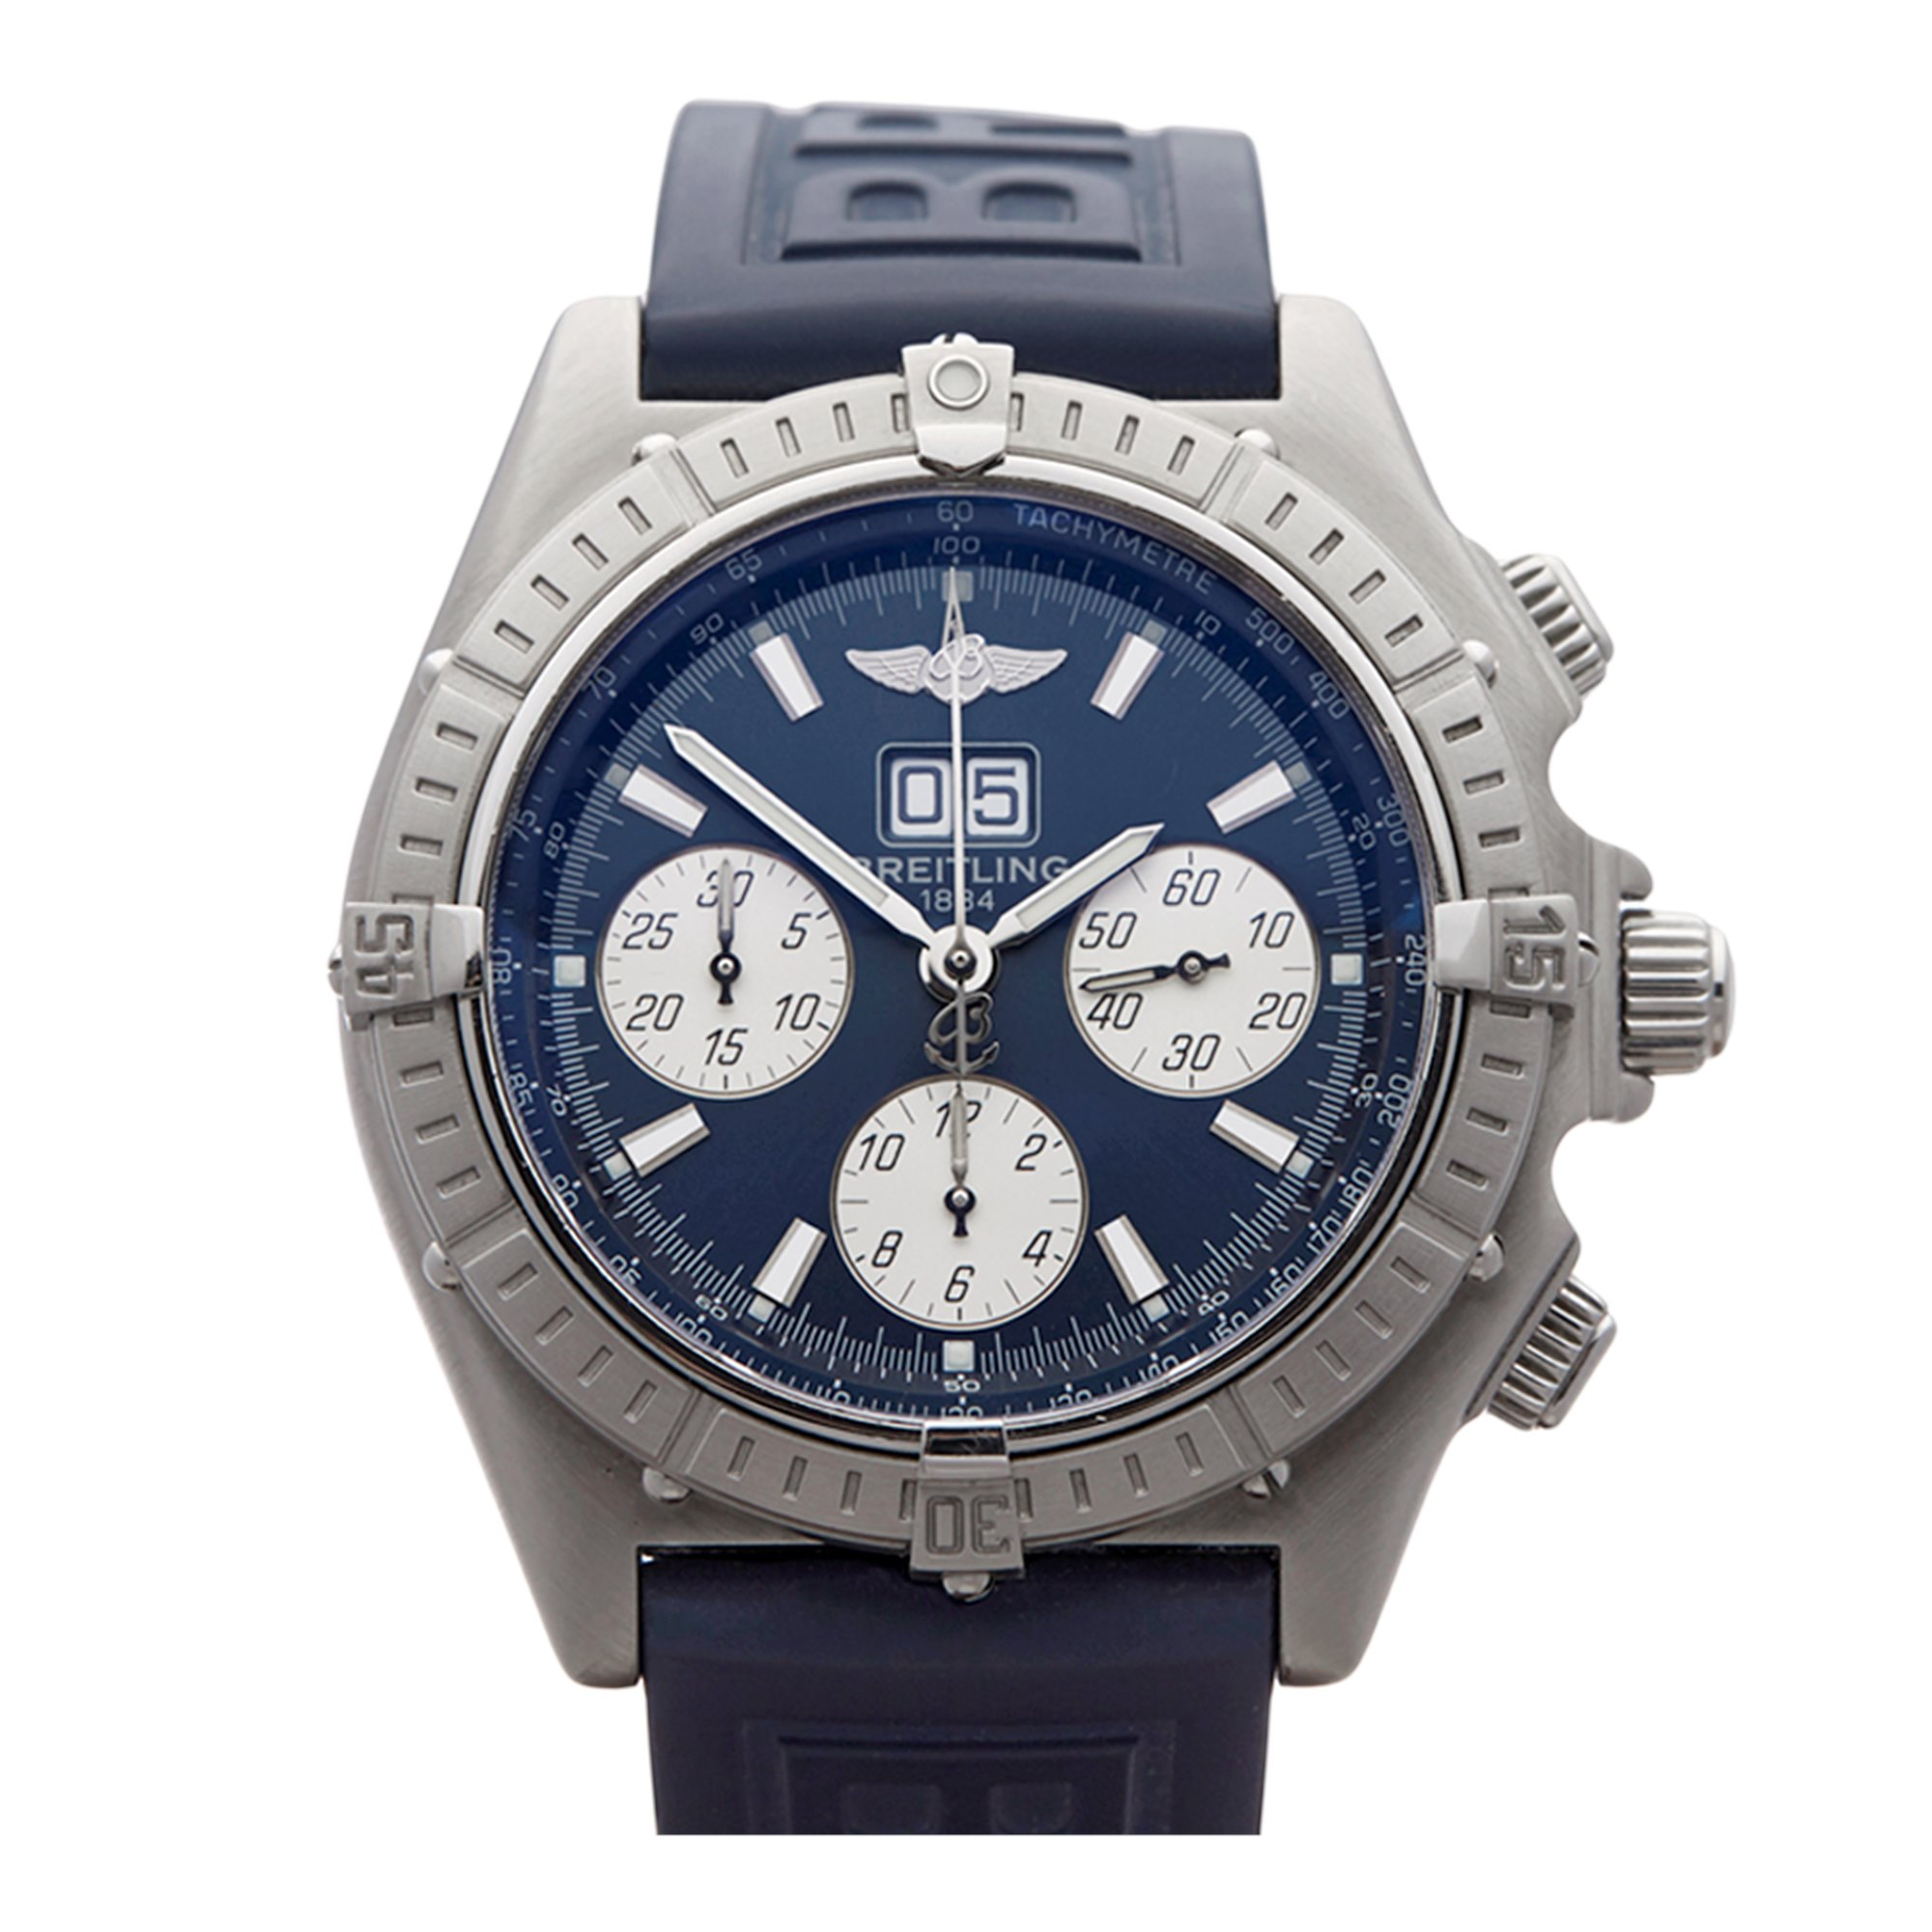 Breitling Crosswind Big Date Chronograph Stainless Steel A4435512/C516